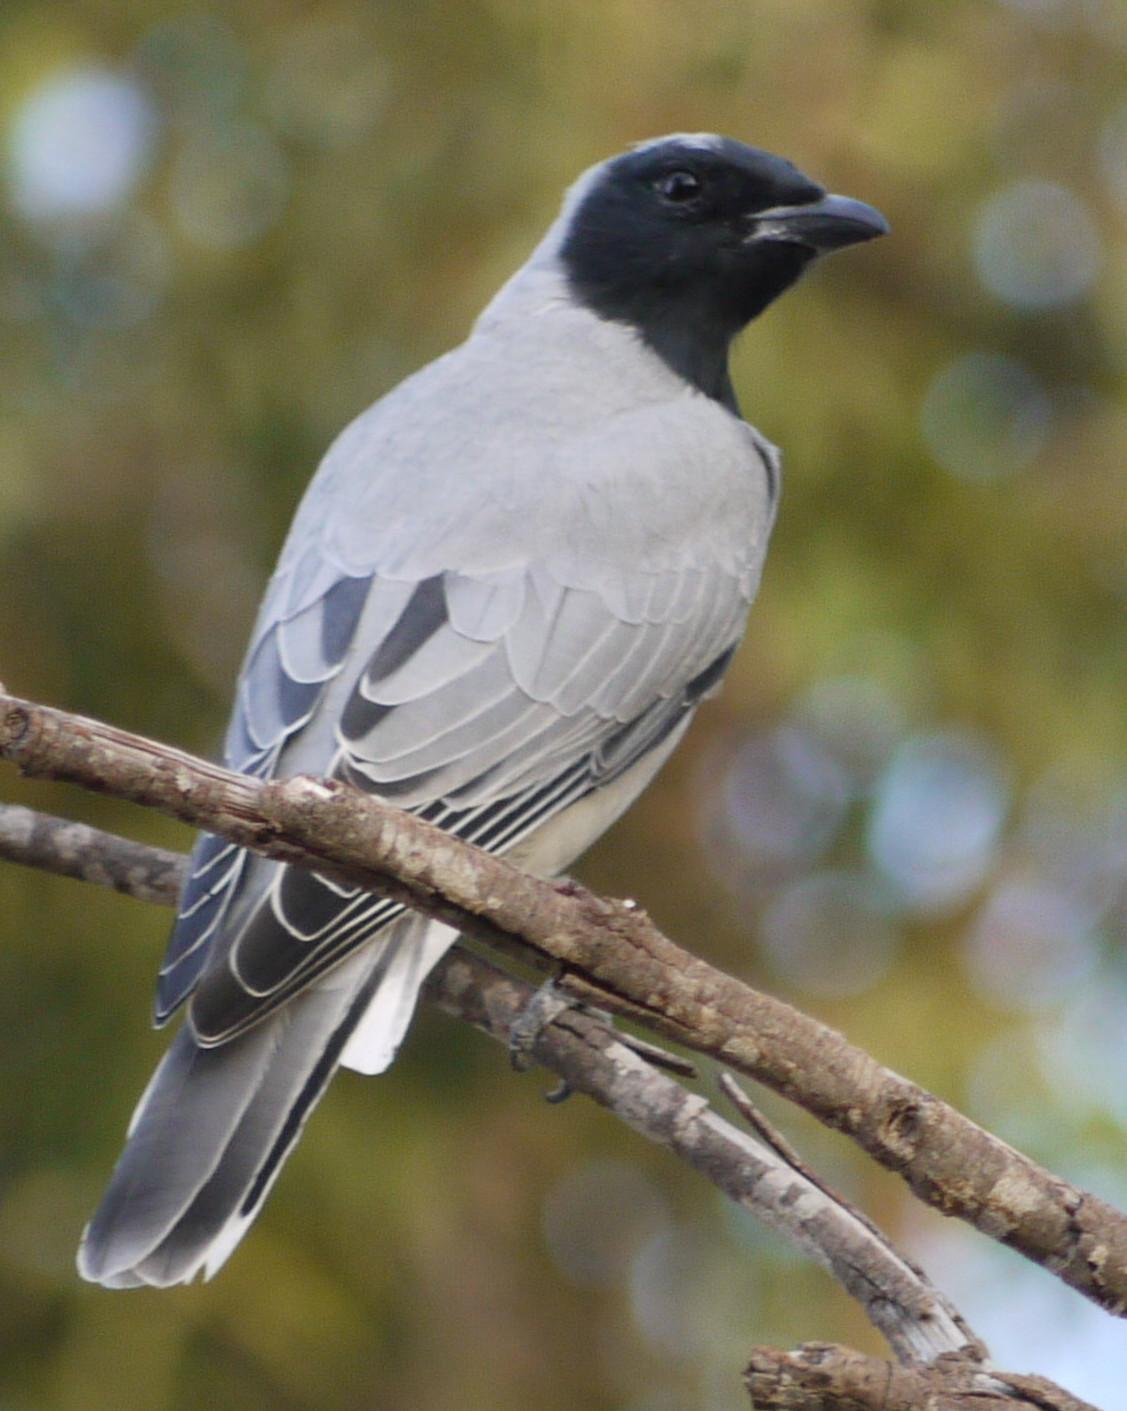 Black-faced Cuckooshrike Photo by Peter Lowe